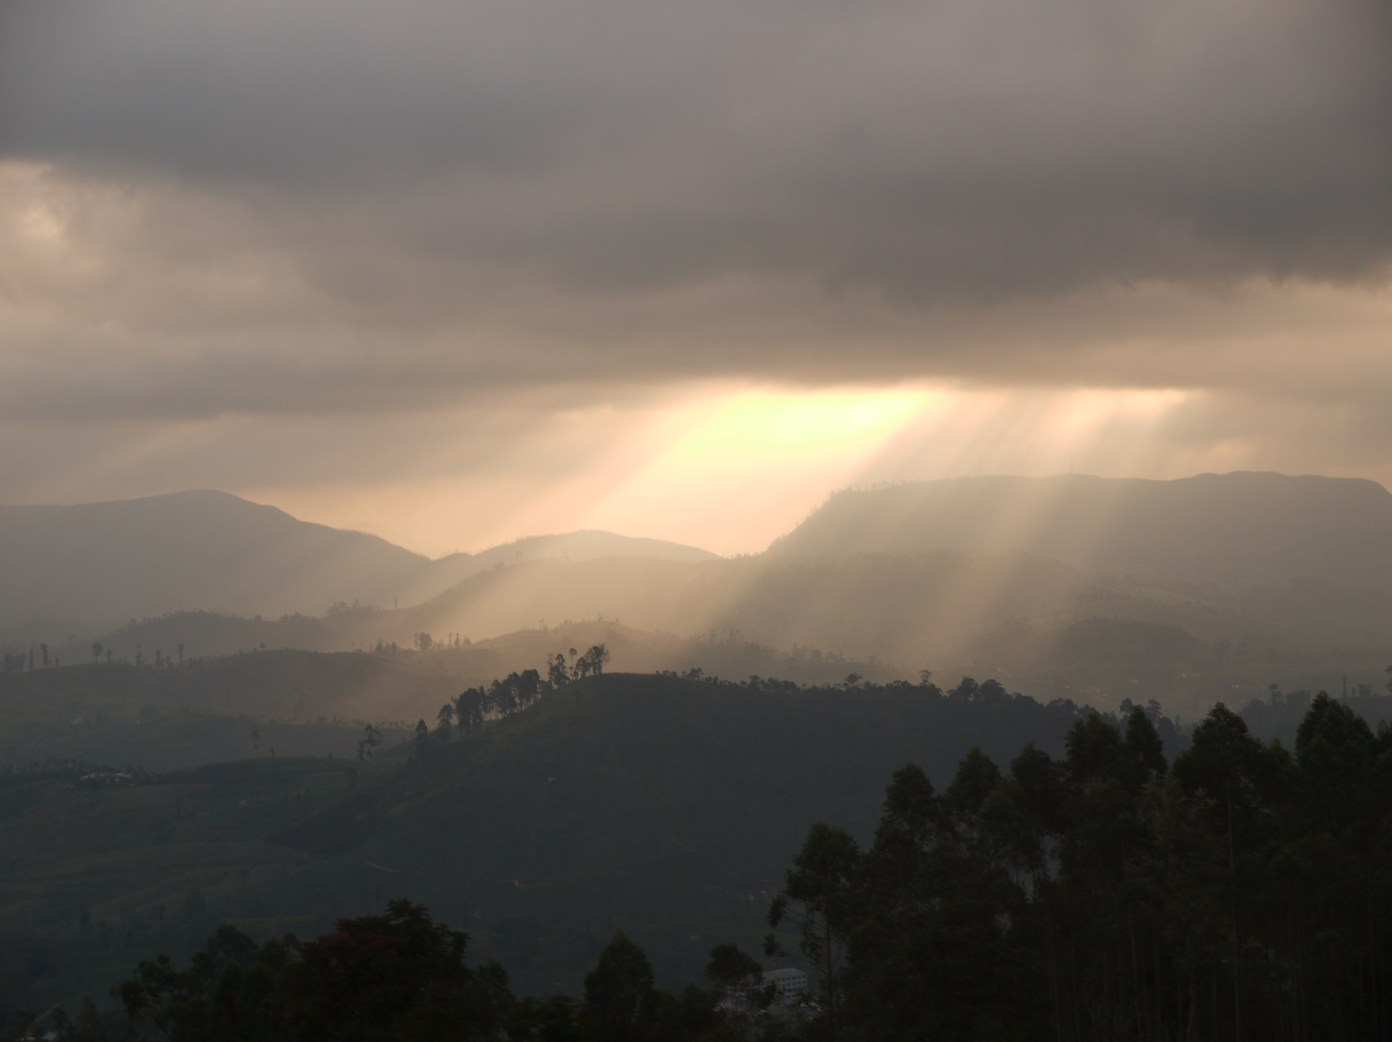 The last of the sun breaks through the clouds as duesk settles in in Sri Lanka's Hill Country